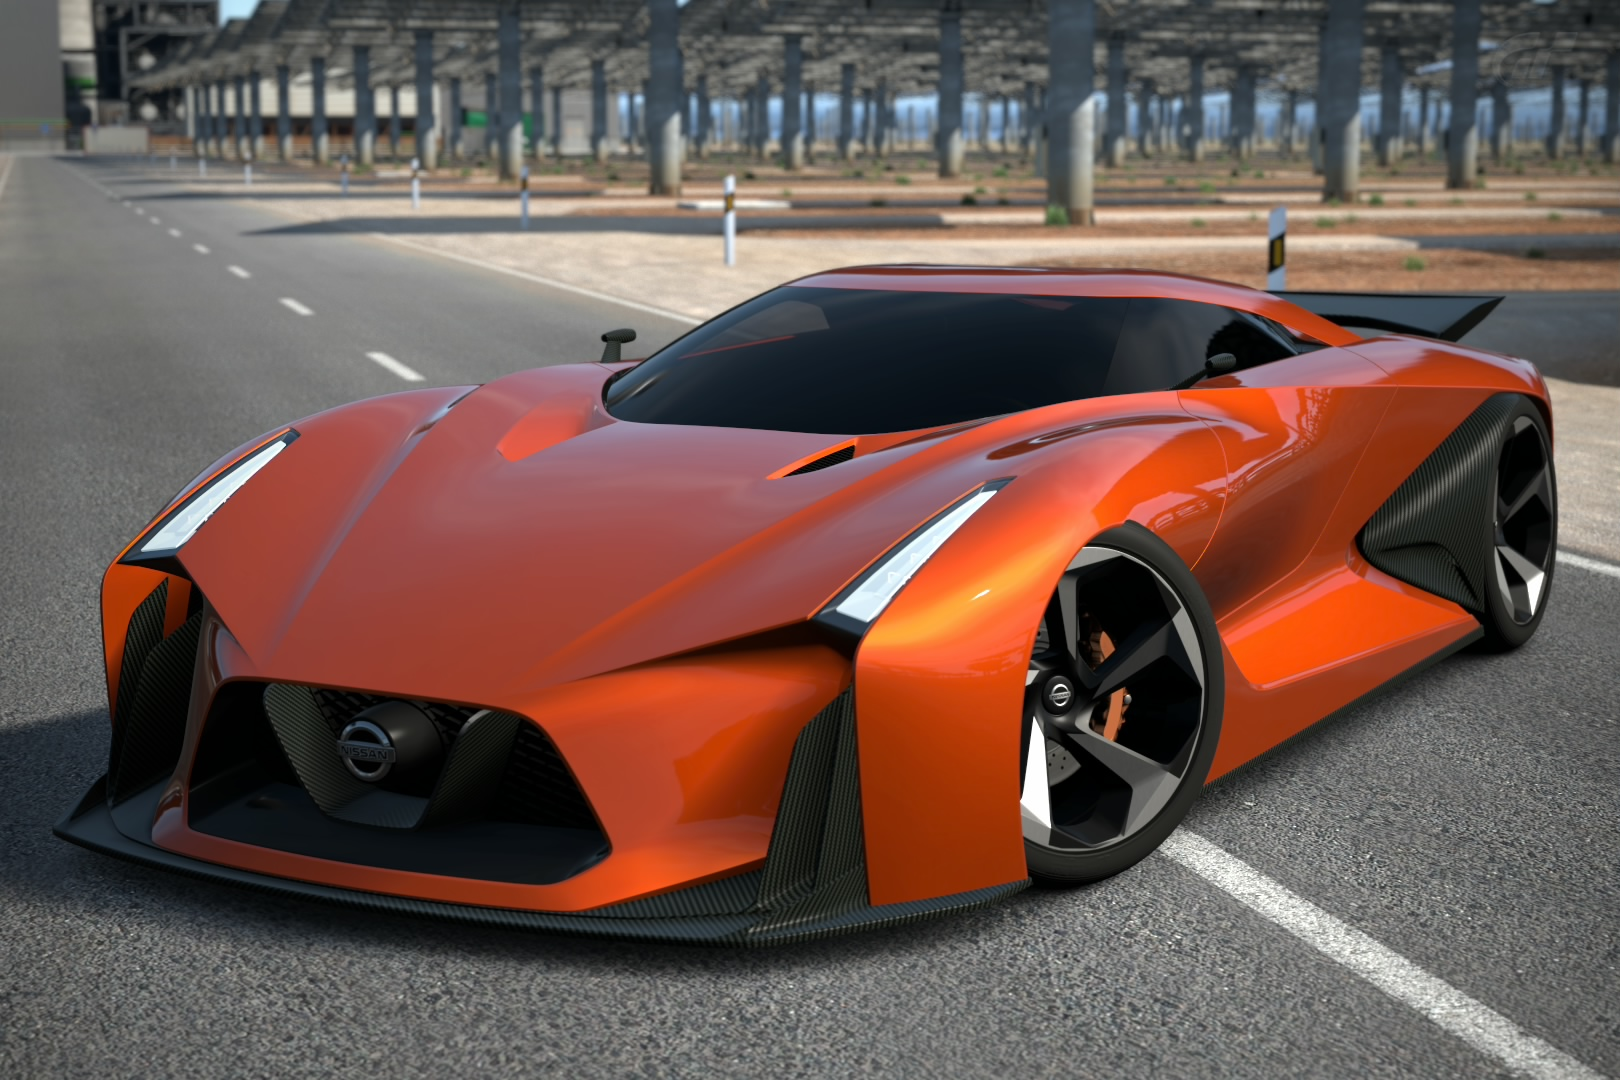 2020 Nissan Gtr Max Update Coming Launch To Tell ...